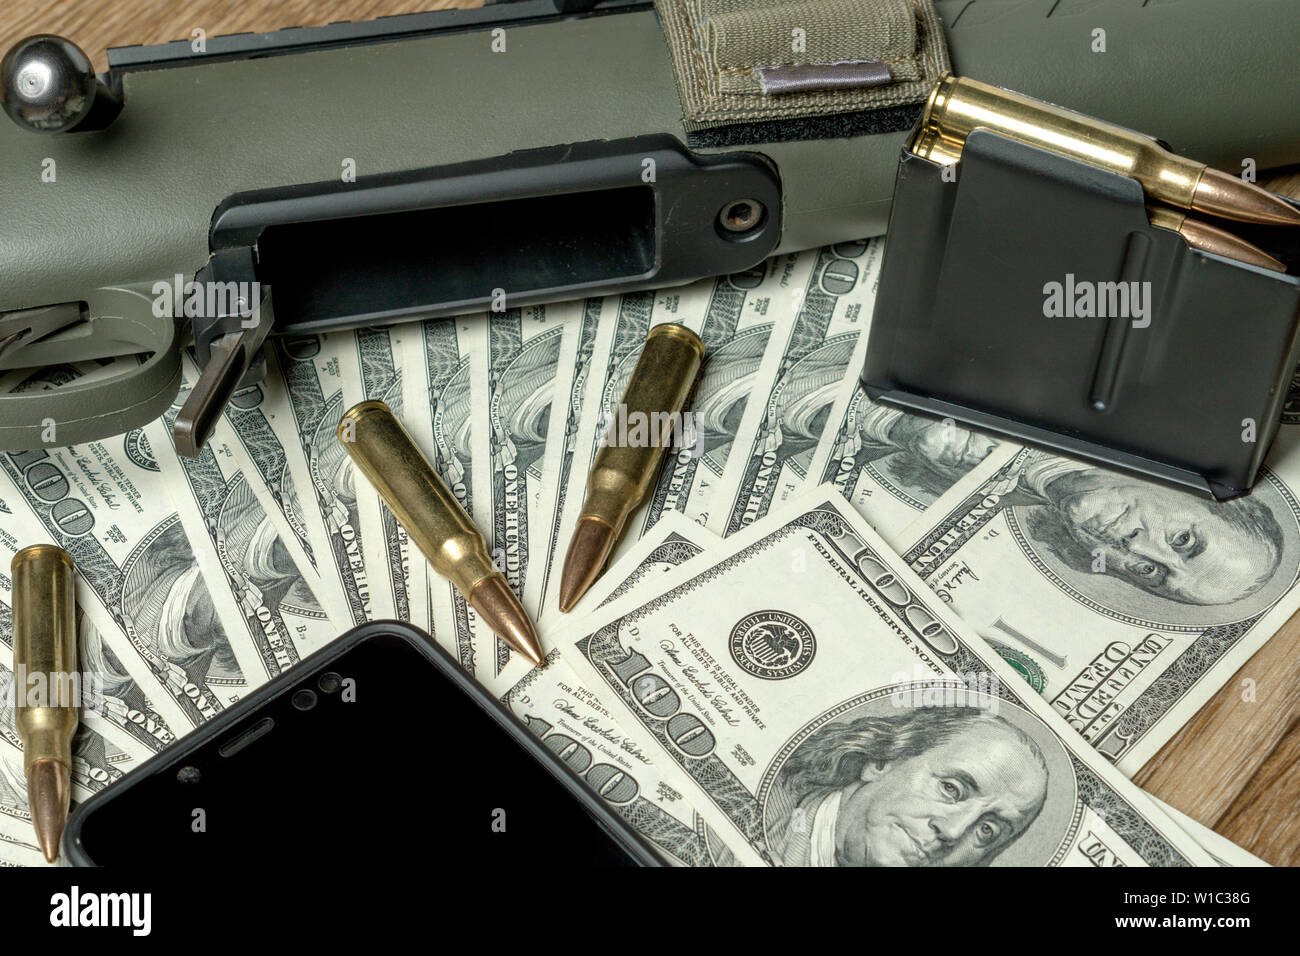 Rifle, magazine and cartridges on money. Concept for crime, contract killing, paid assassin, terrorism, war, global arms trade, weapons sale. Illegal - Stock Image